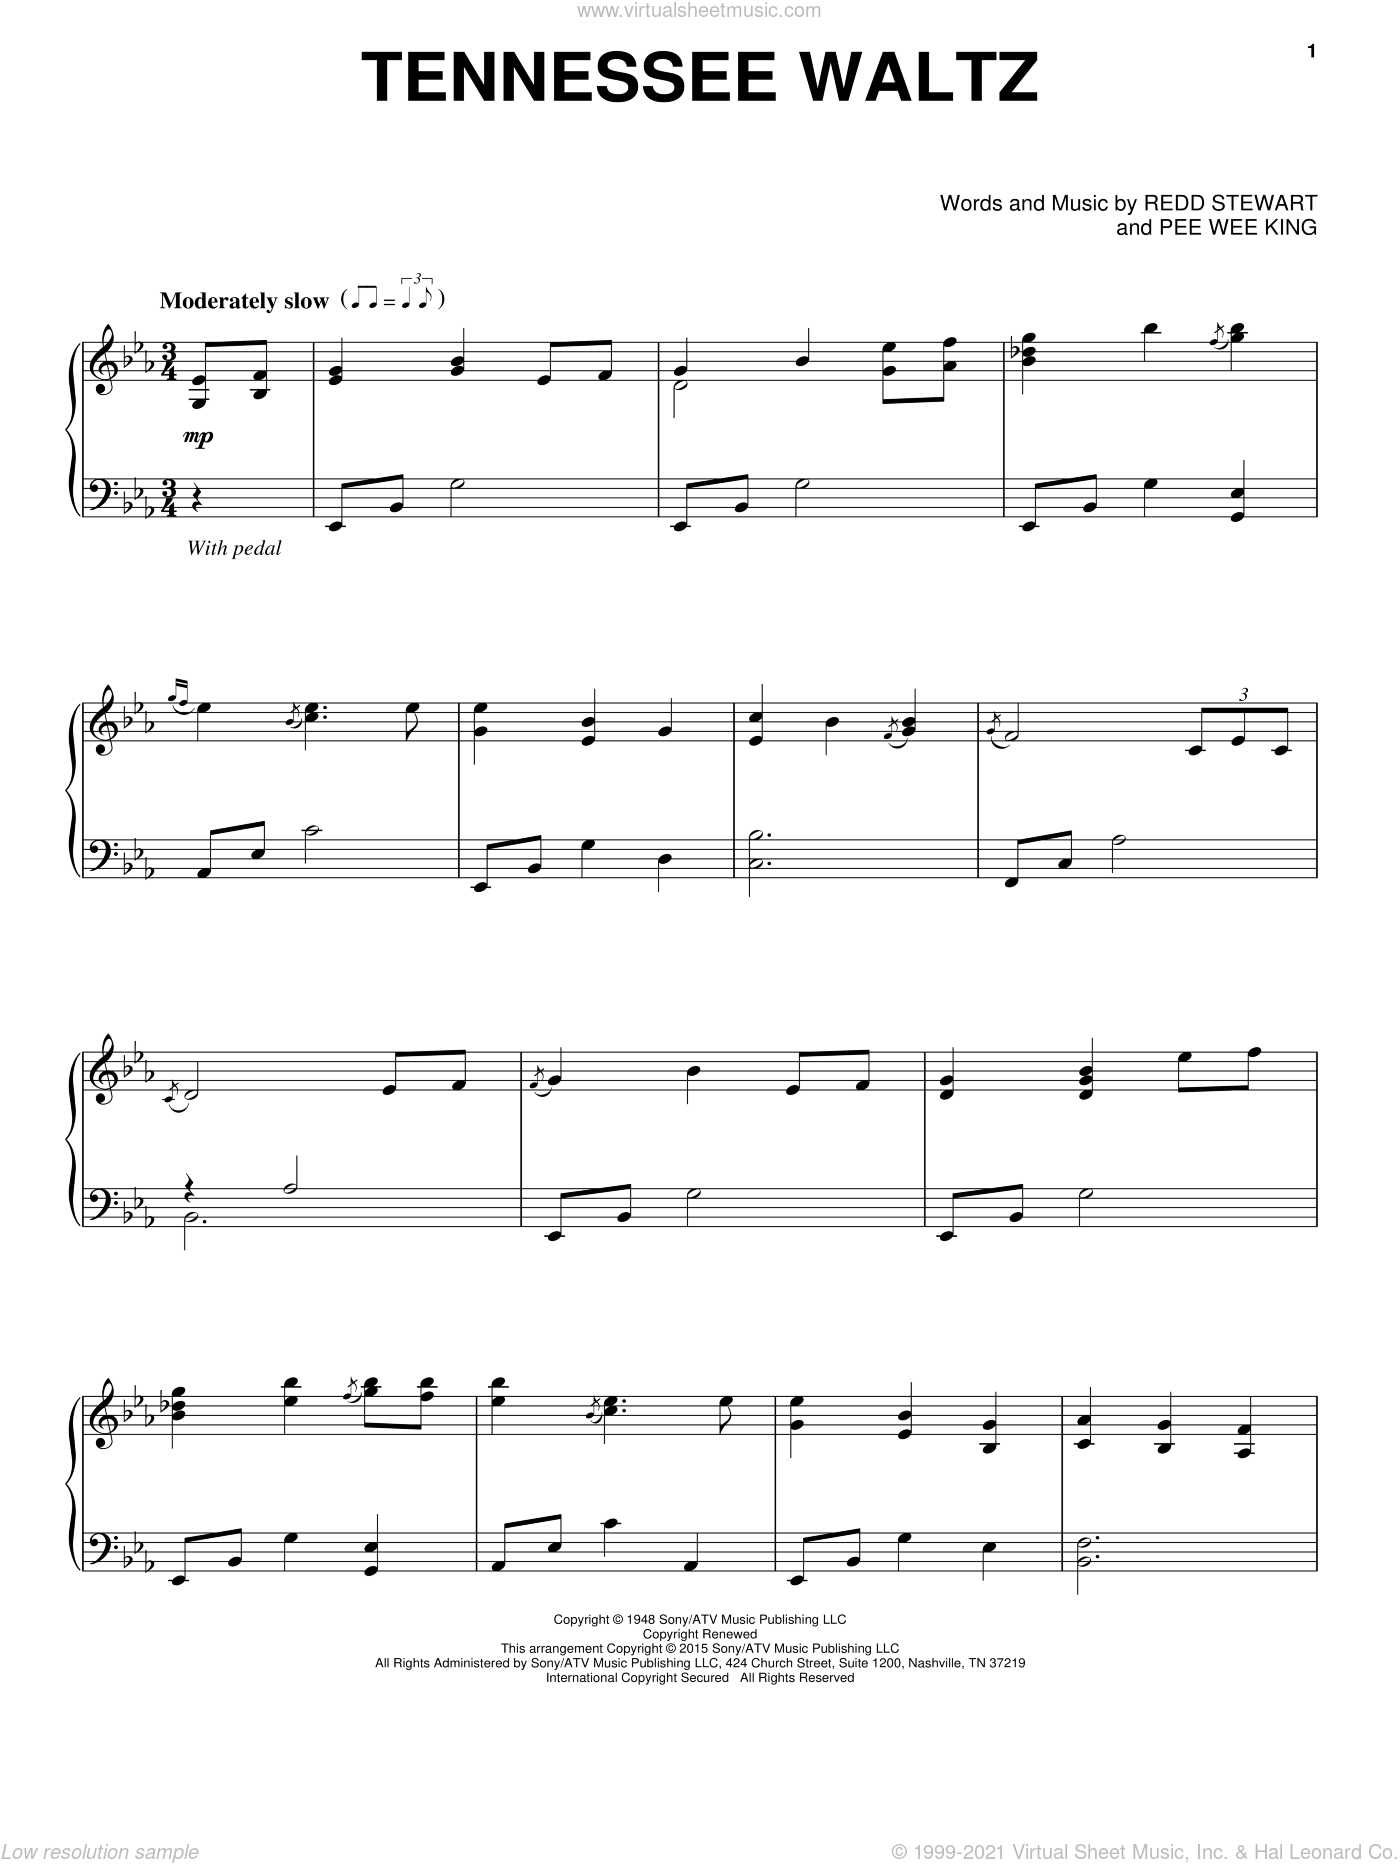 Tennessee Waltz sheet music for piano solo by Patty Page, Patti Page, Pee Wee King and Redd Stewart, intermediate skill level